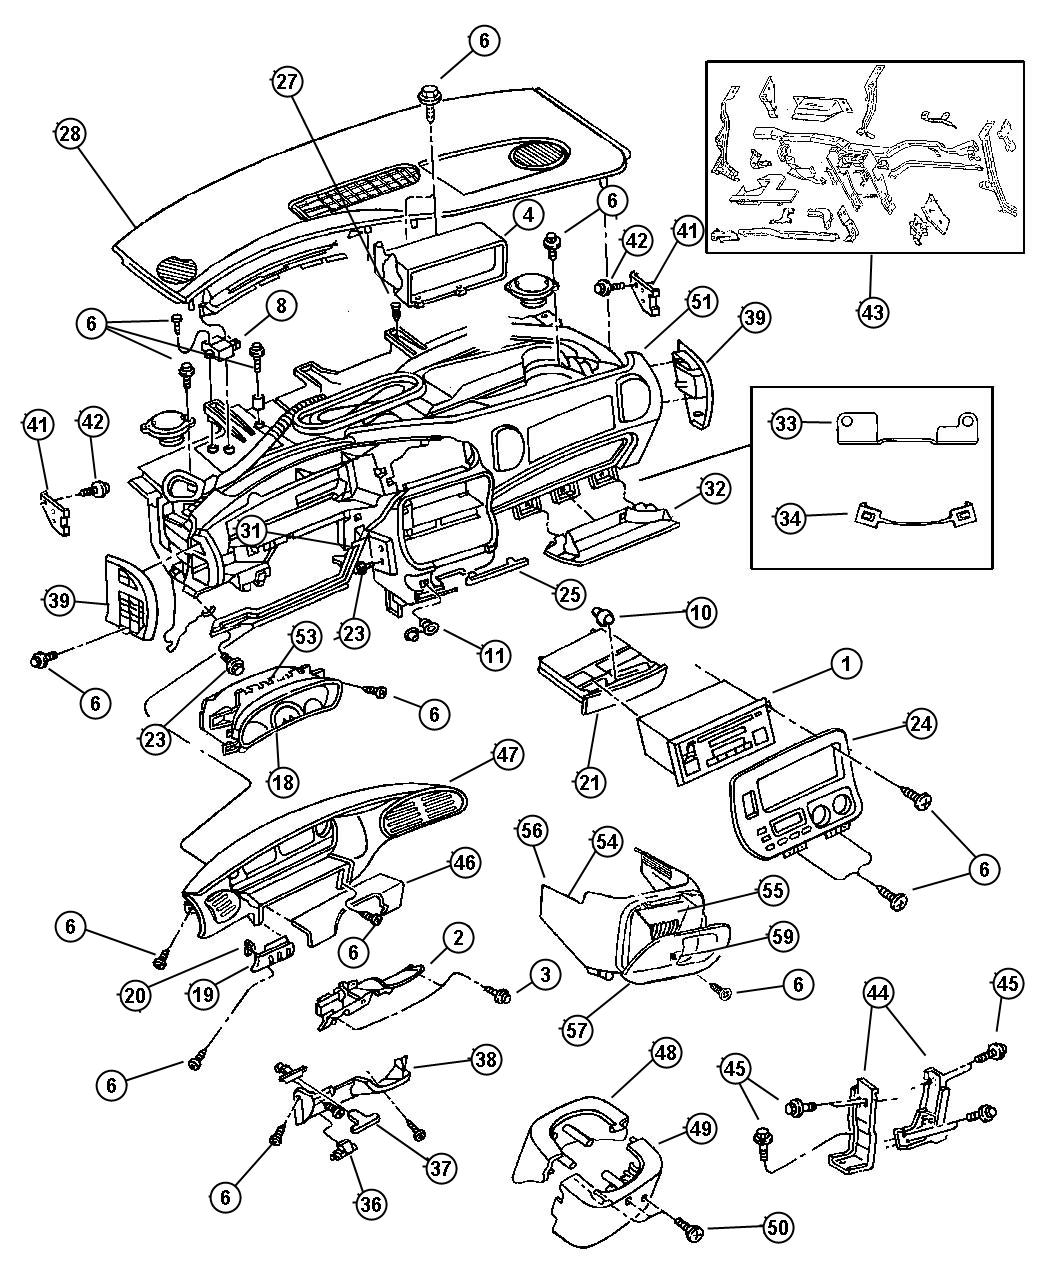 Wiring Harness Dodge Caravan Sliding Door in addition 271203789820 together with Chevy Ls1 Related Info likewise Mopar Cable Hood Release 55360280af also 2007 Pacifica Motor Mount Diagram. on mopar 3 8l engine diagram